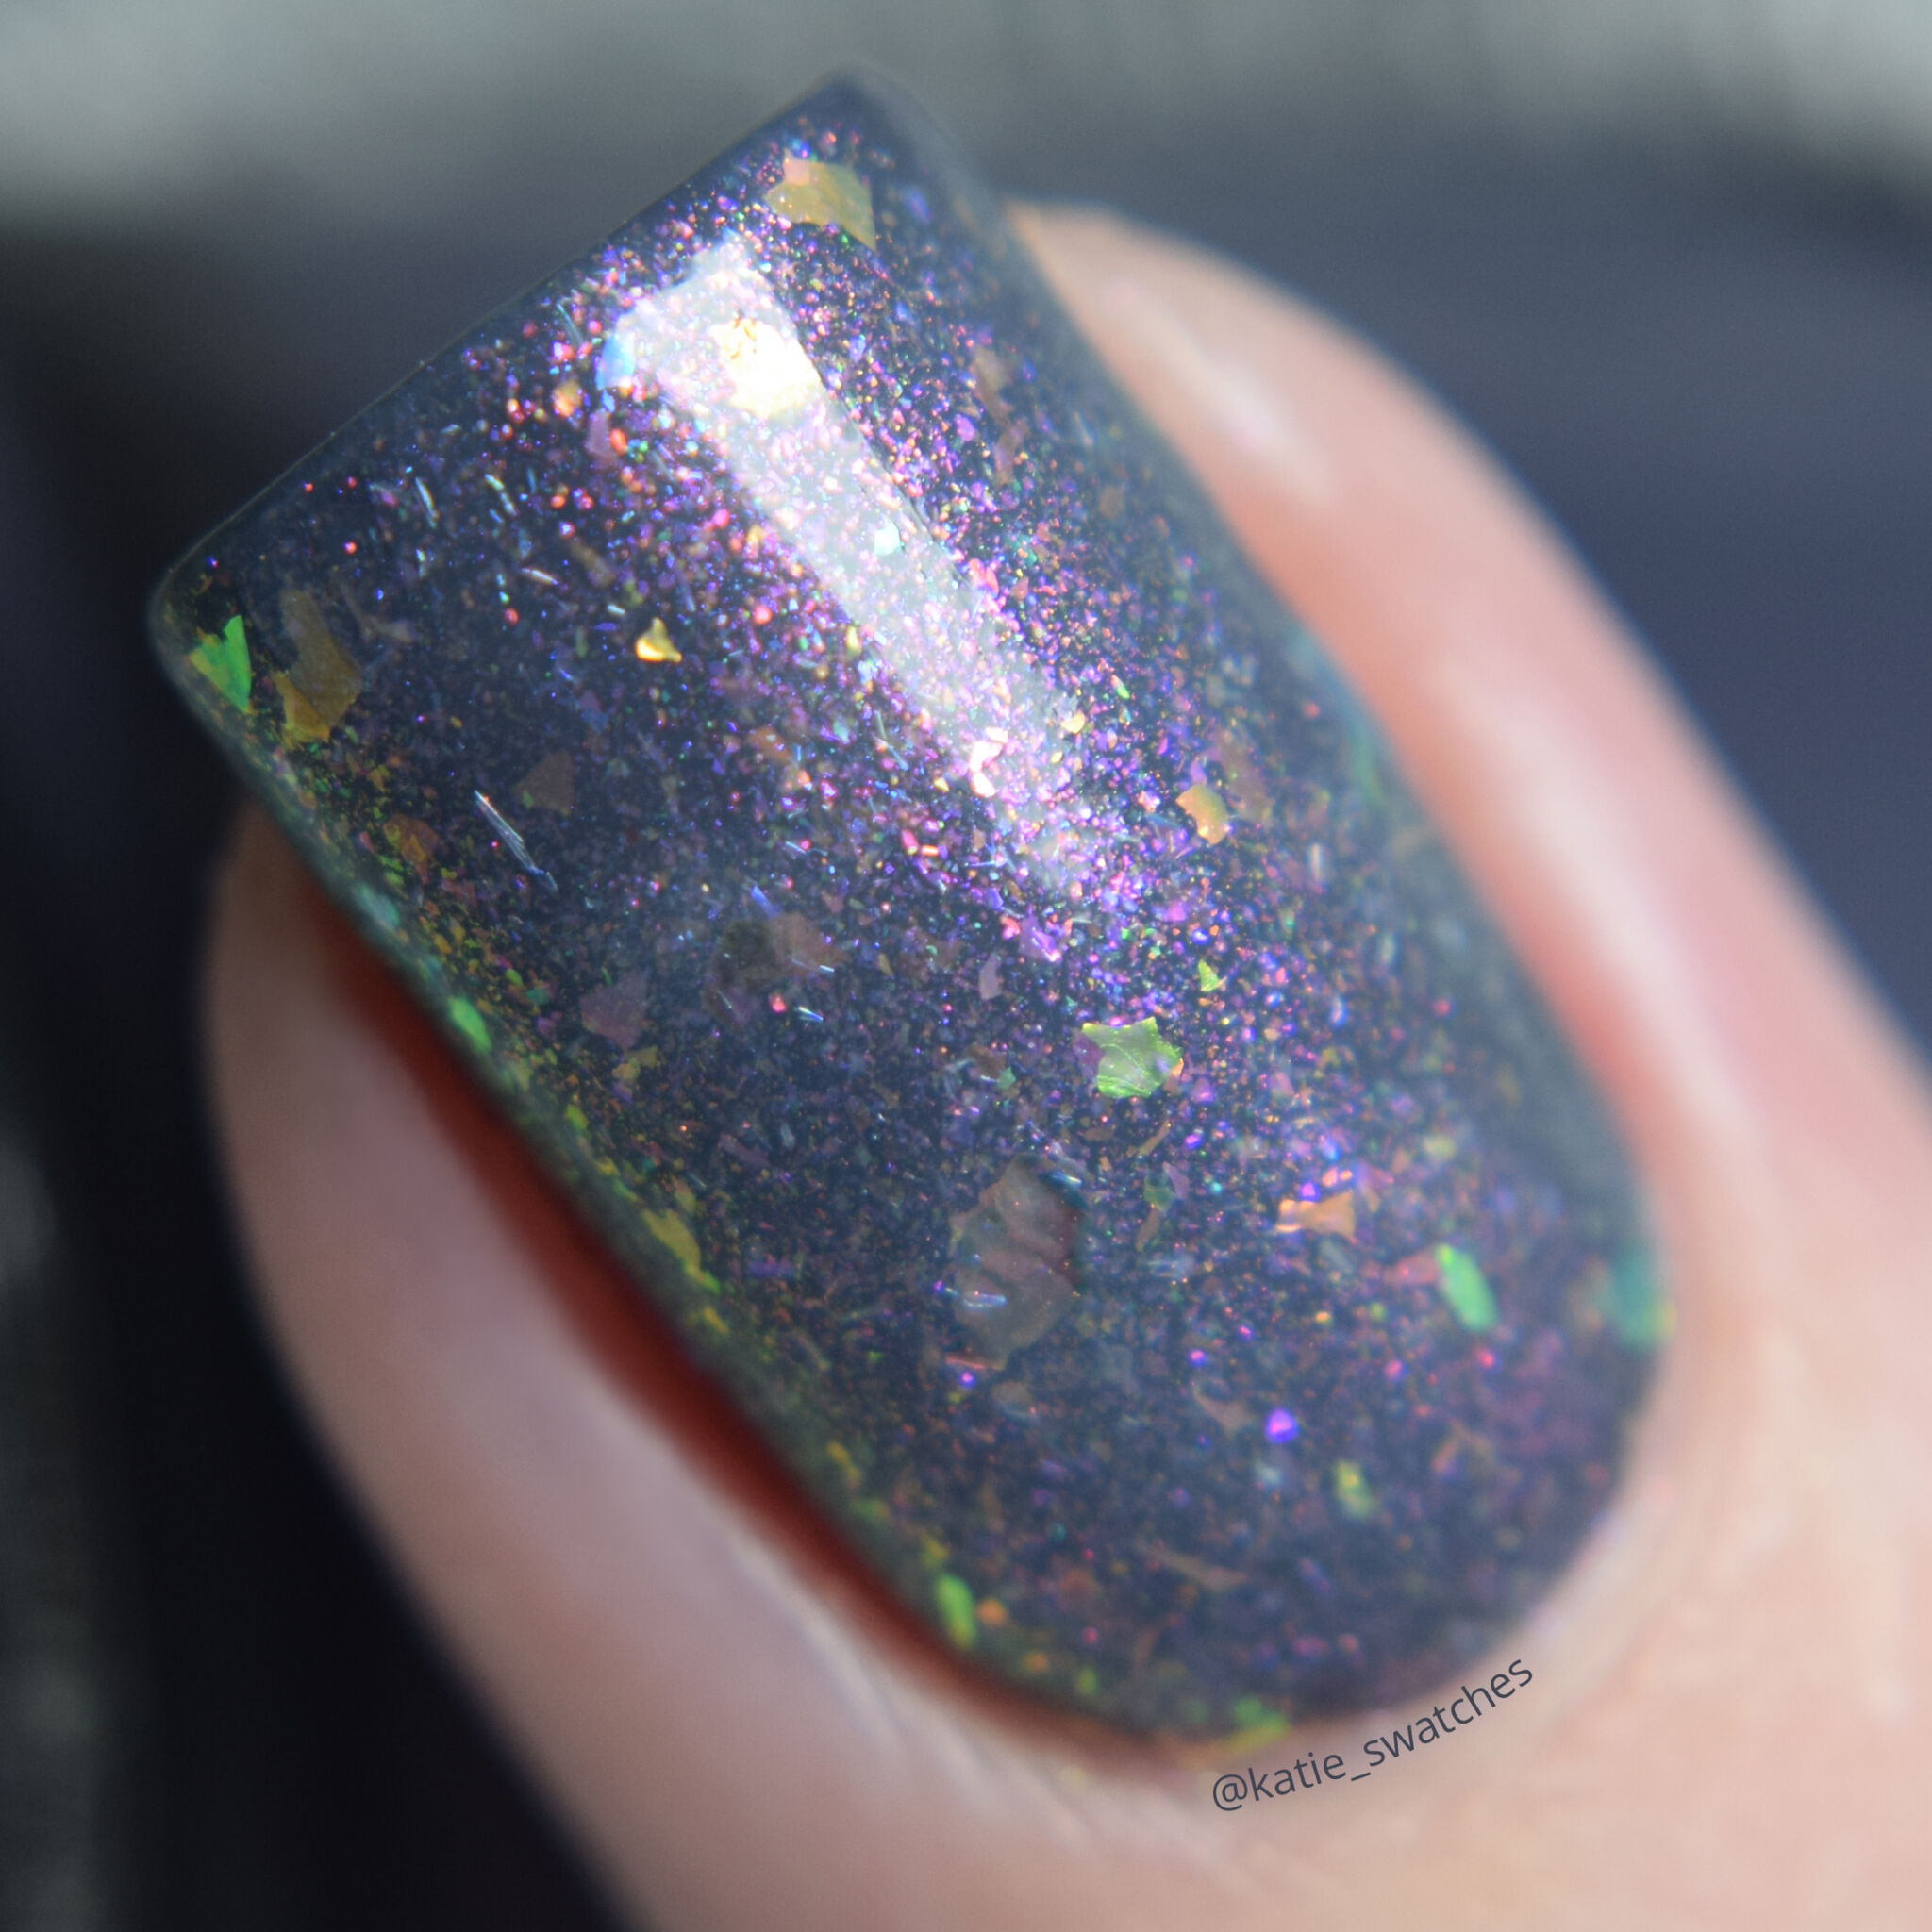 Girly Bits - Thistle While You Work shimmer flakie layered over I'm Pun-decided charcoal creme nail polish swatch macro